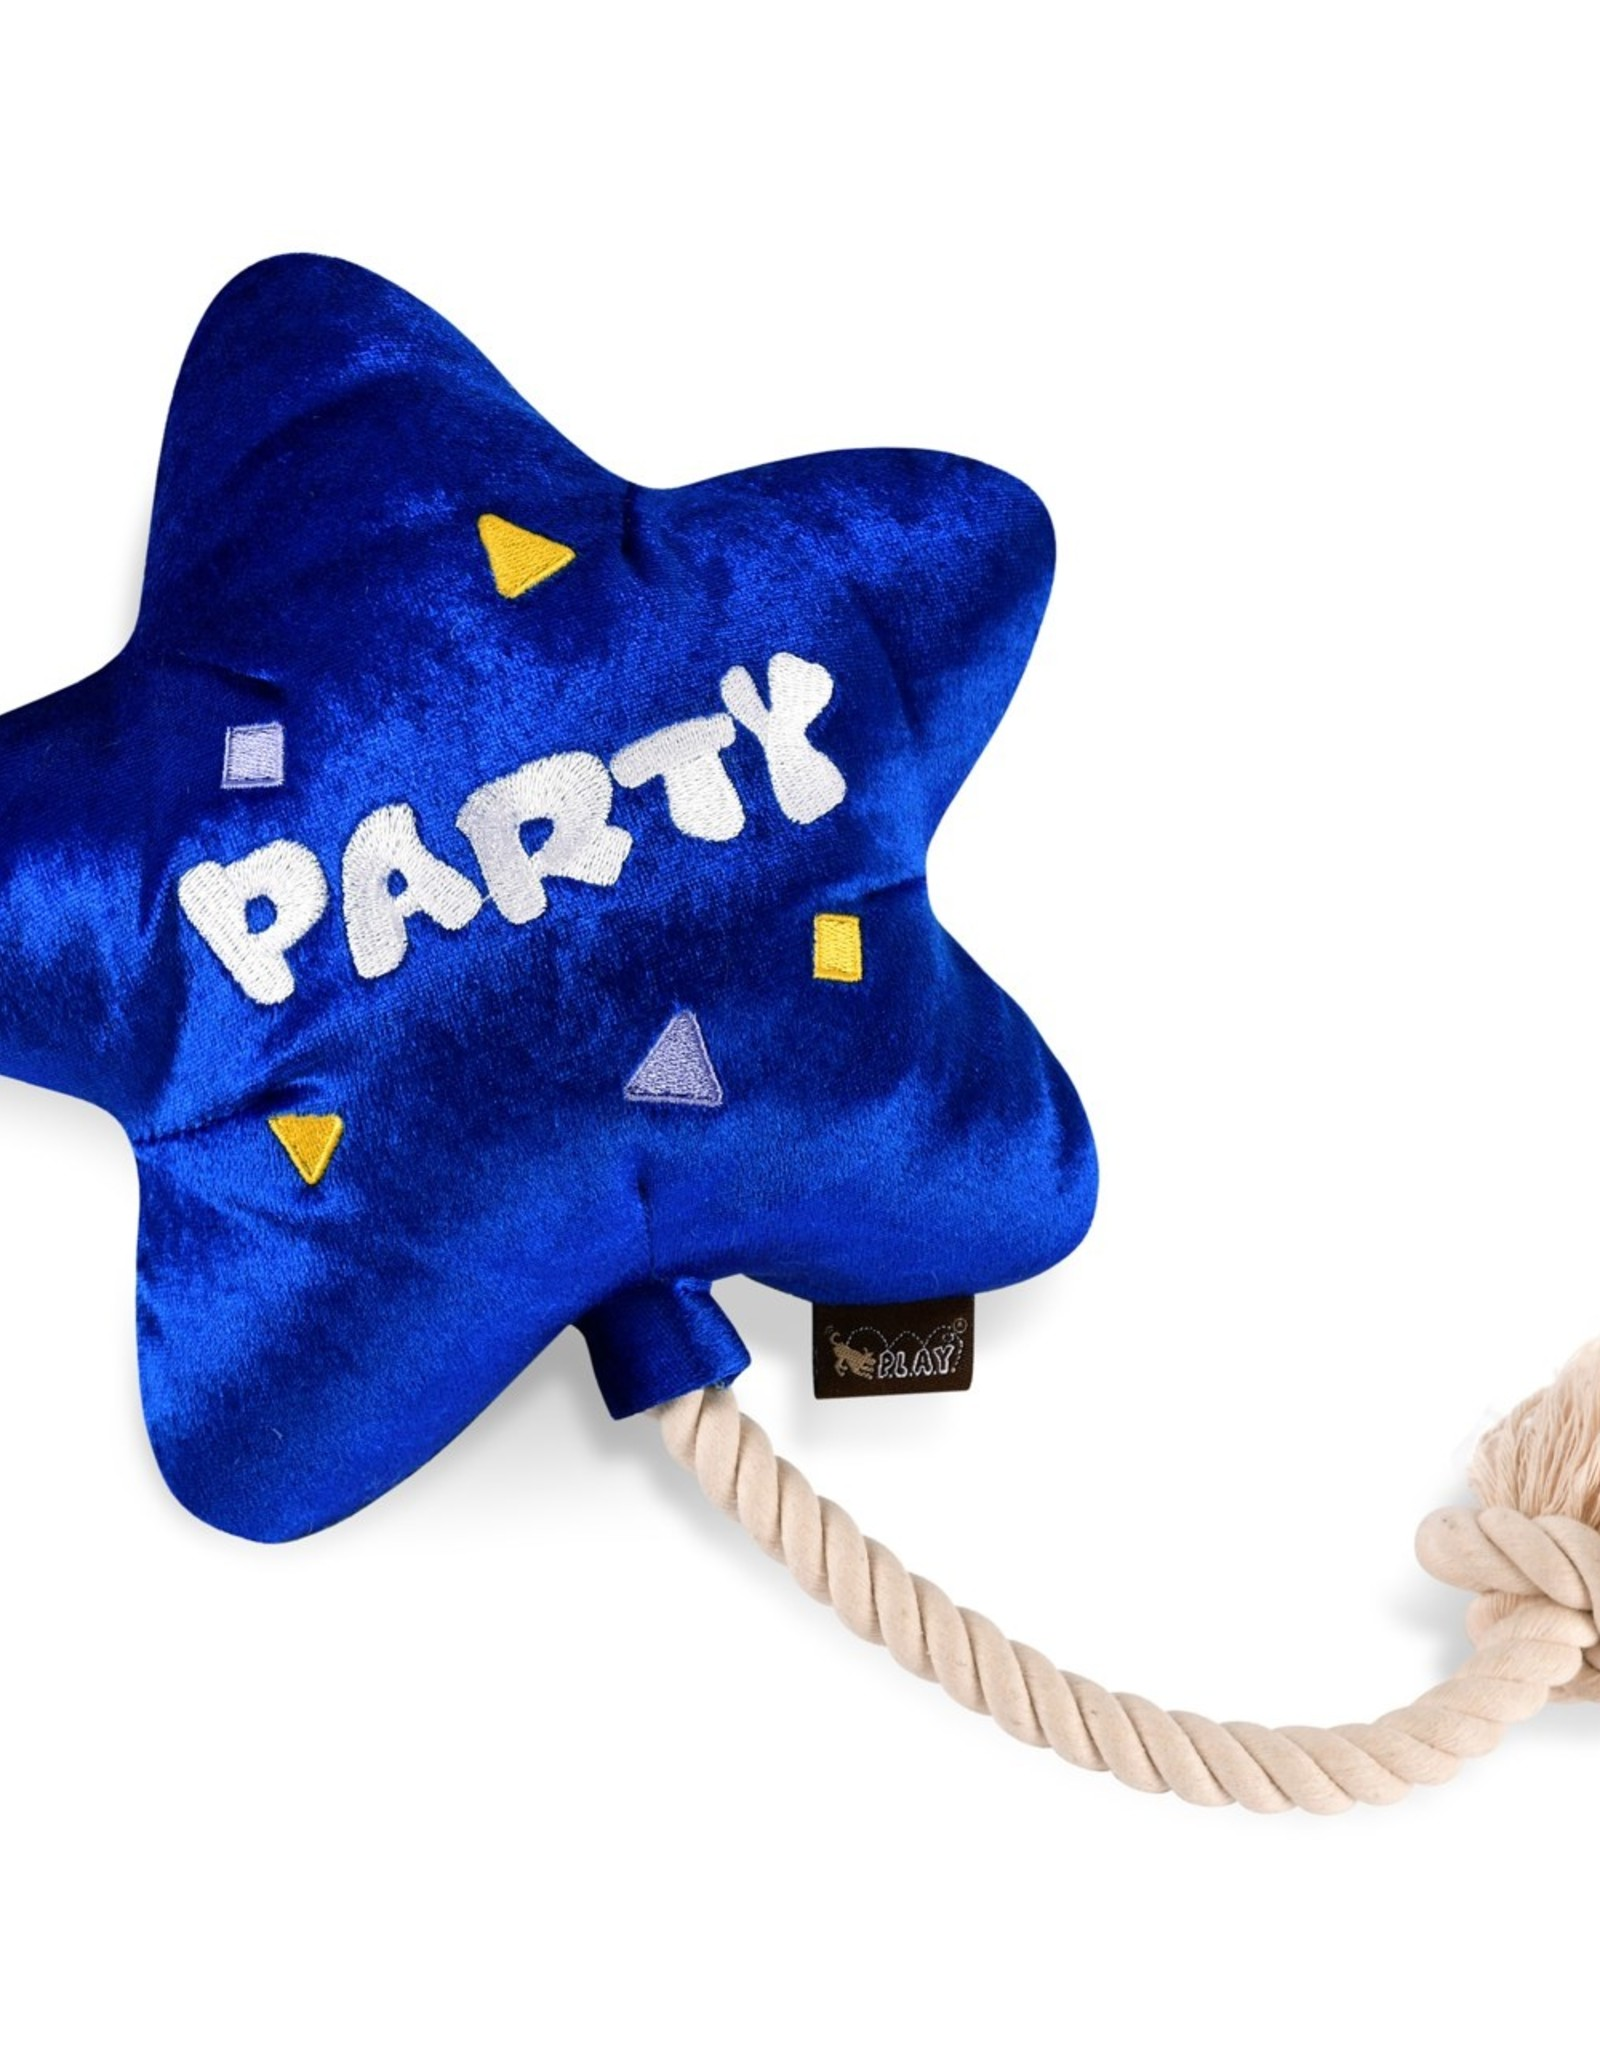 P.L.A.Y. Best Day Ever Balloon Plush Dog Toy